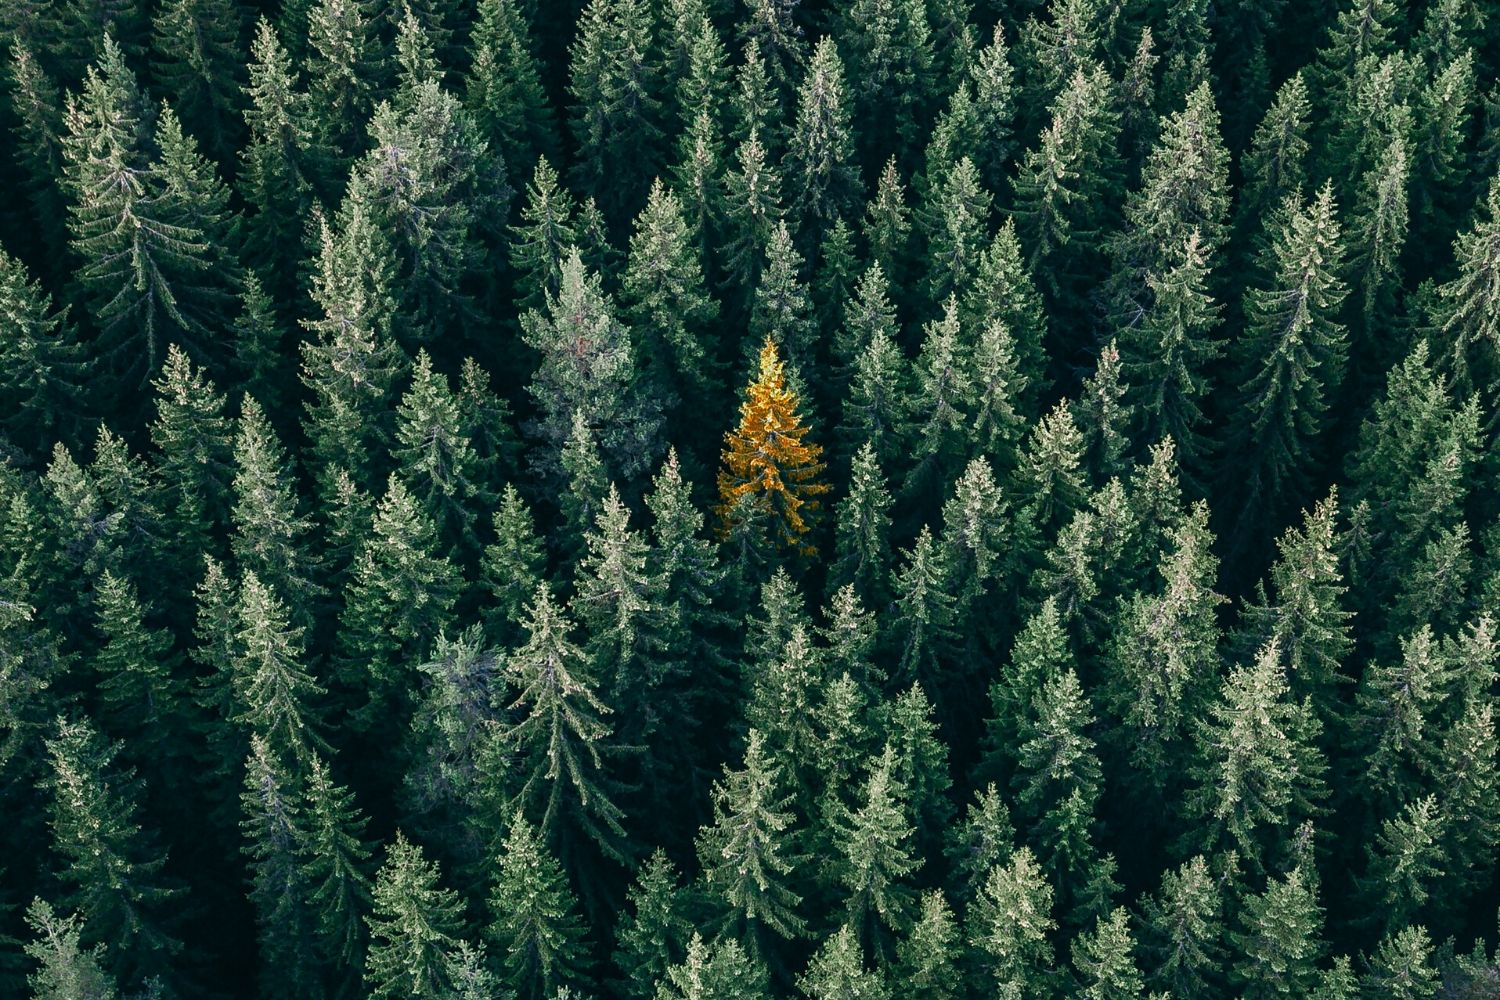 Excellent.org explains the Unique Selling Proposition (USP) and explains how a unique selling proposition can be formulated, the picture shows many green fir trees, with a single yellow one in the middle